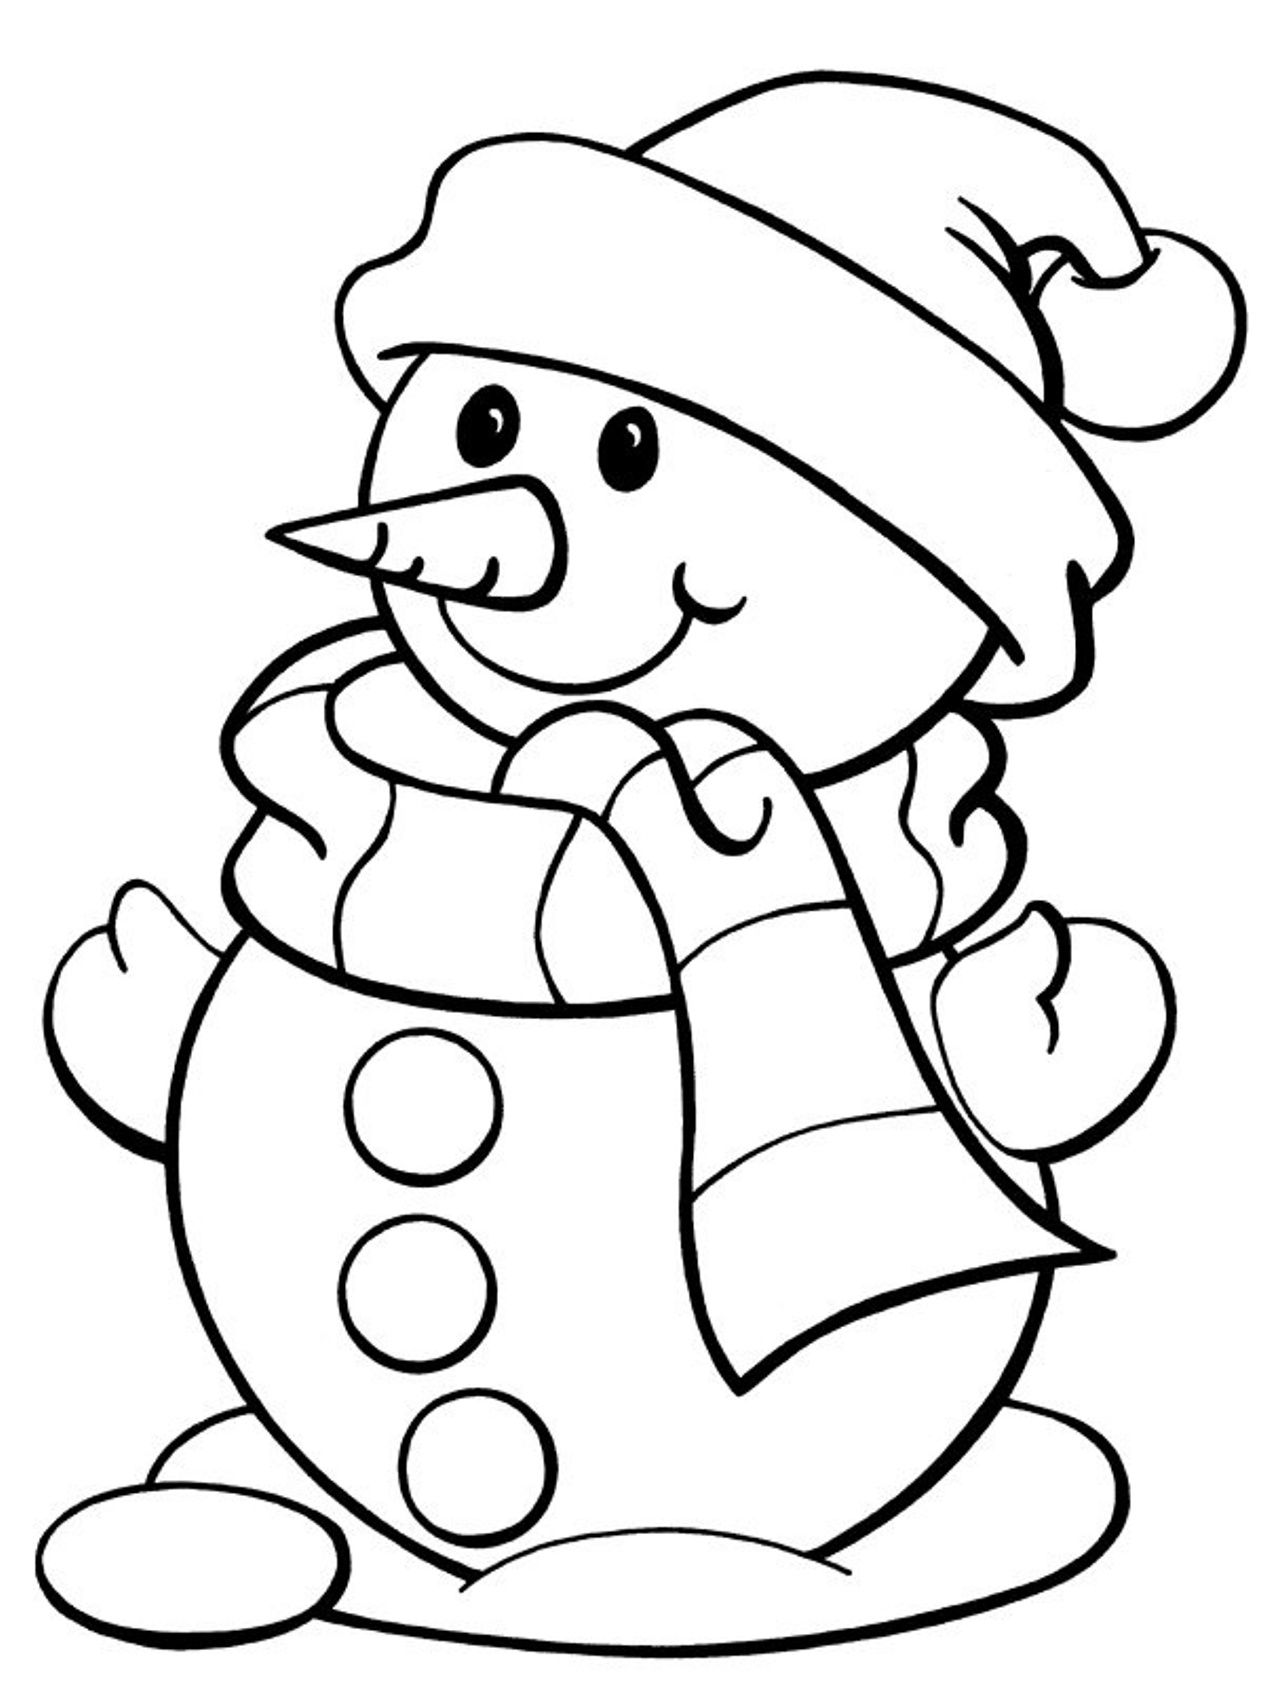 coloring scenes for kids free printable winter coloring pages for kids for scenes kids coloring